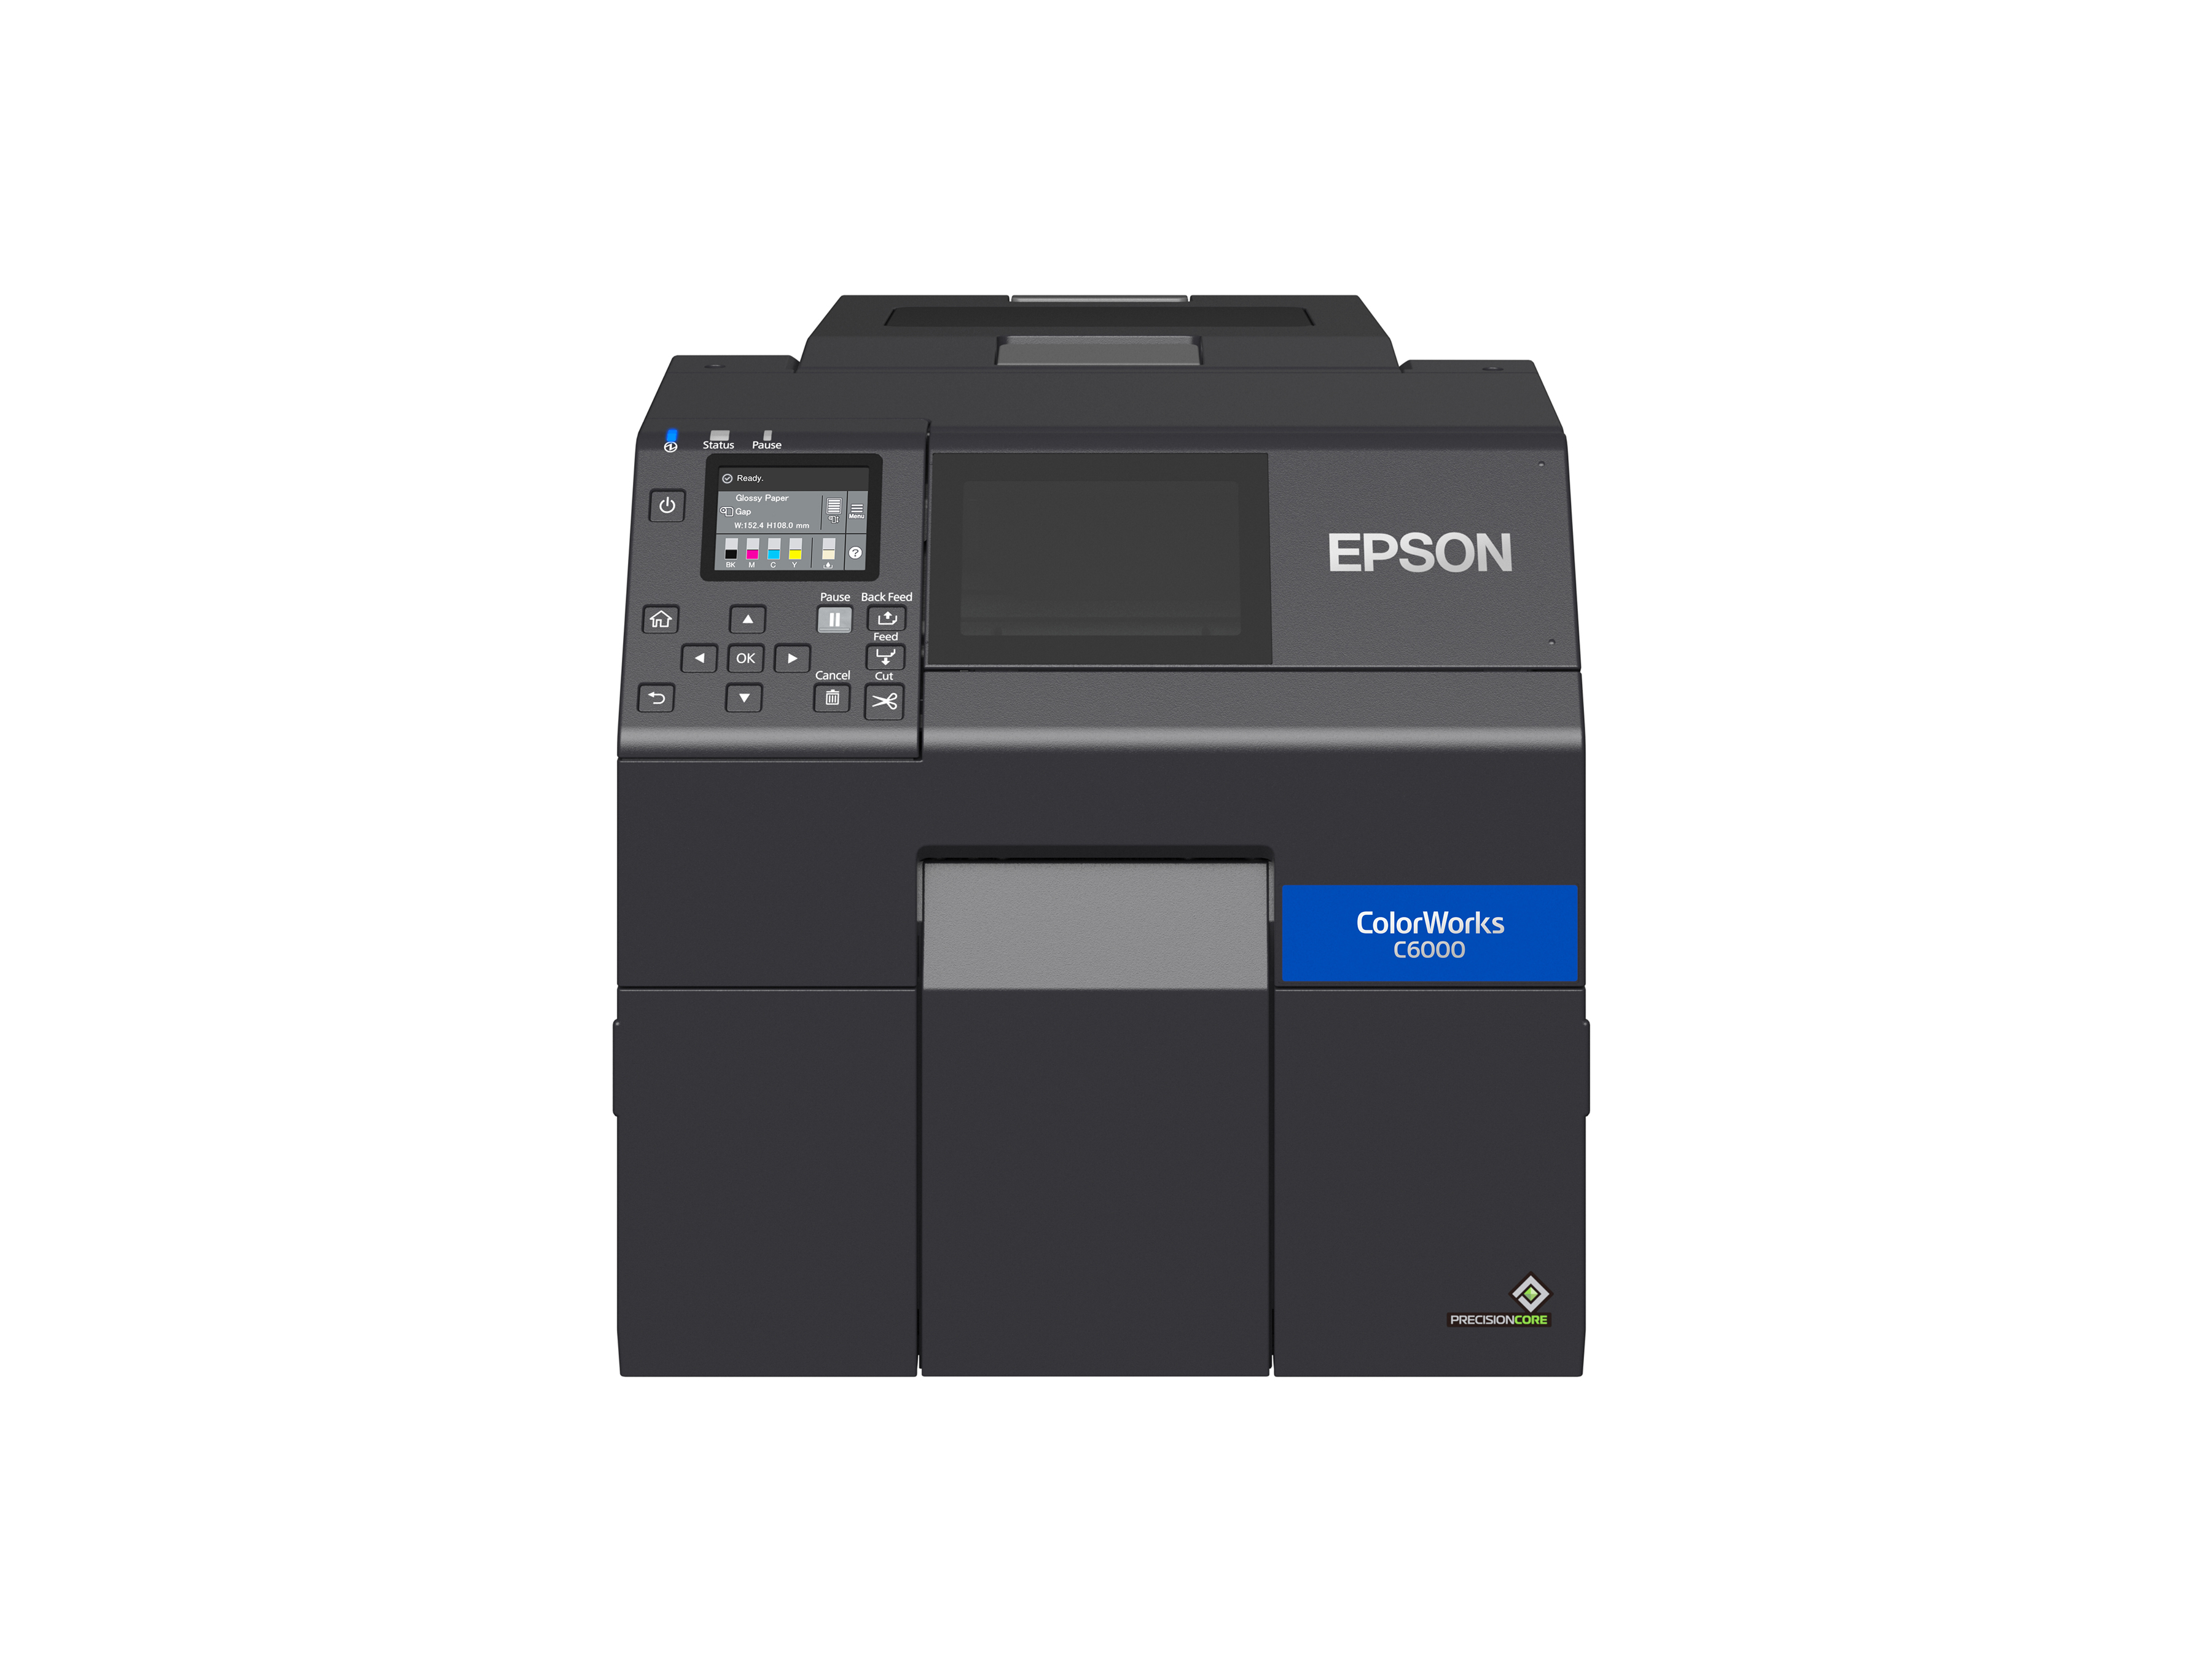 Epson C6000A inkjet label printer